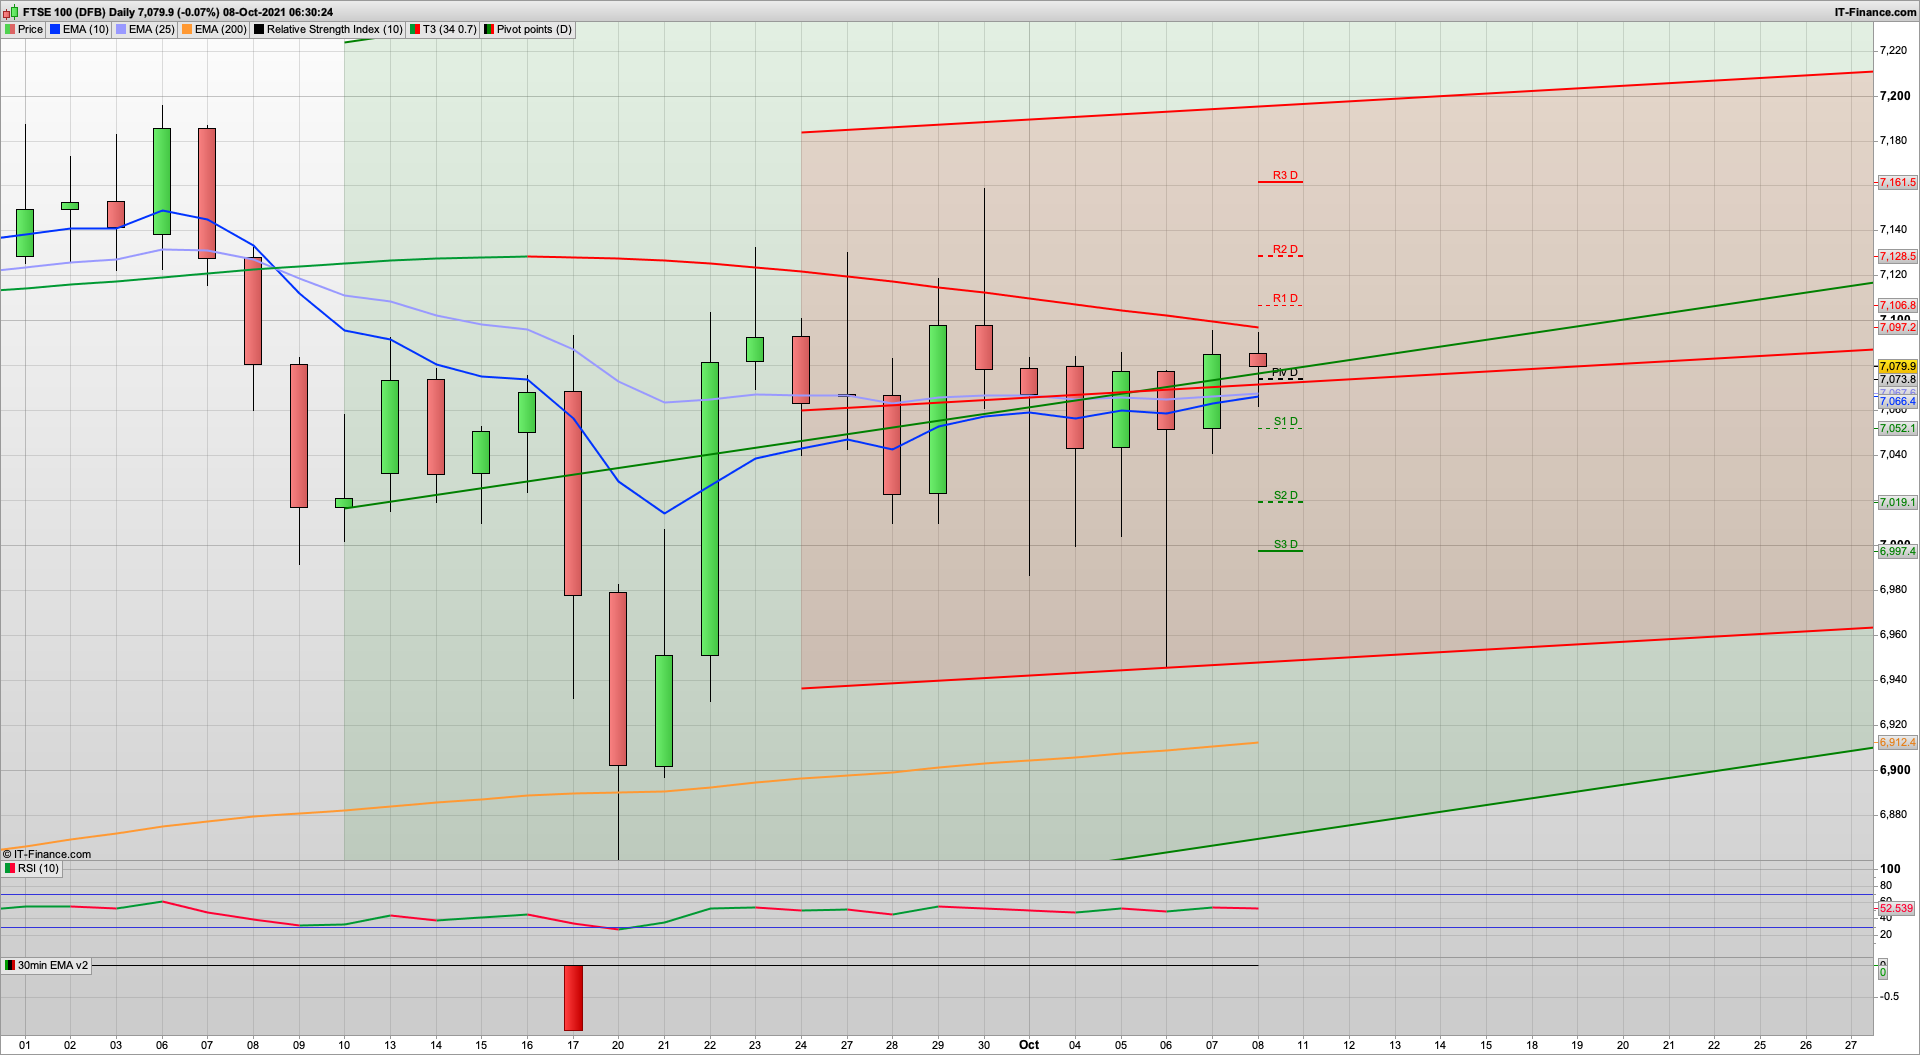 Bulls are back or are they   4430 needs to break for ATH   NFP today   7070 7040 support   7150 resistance